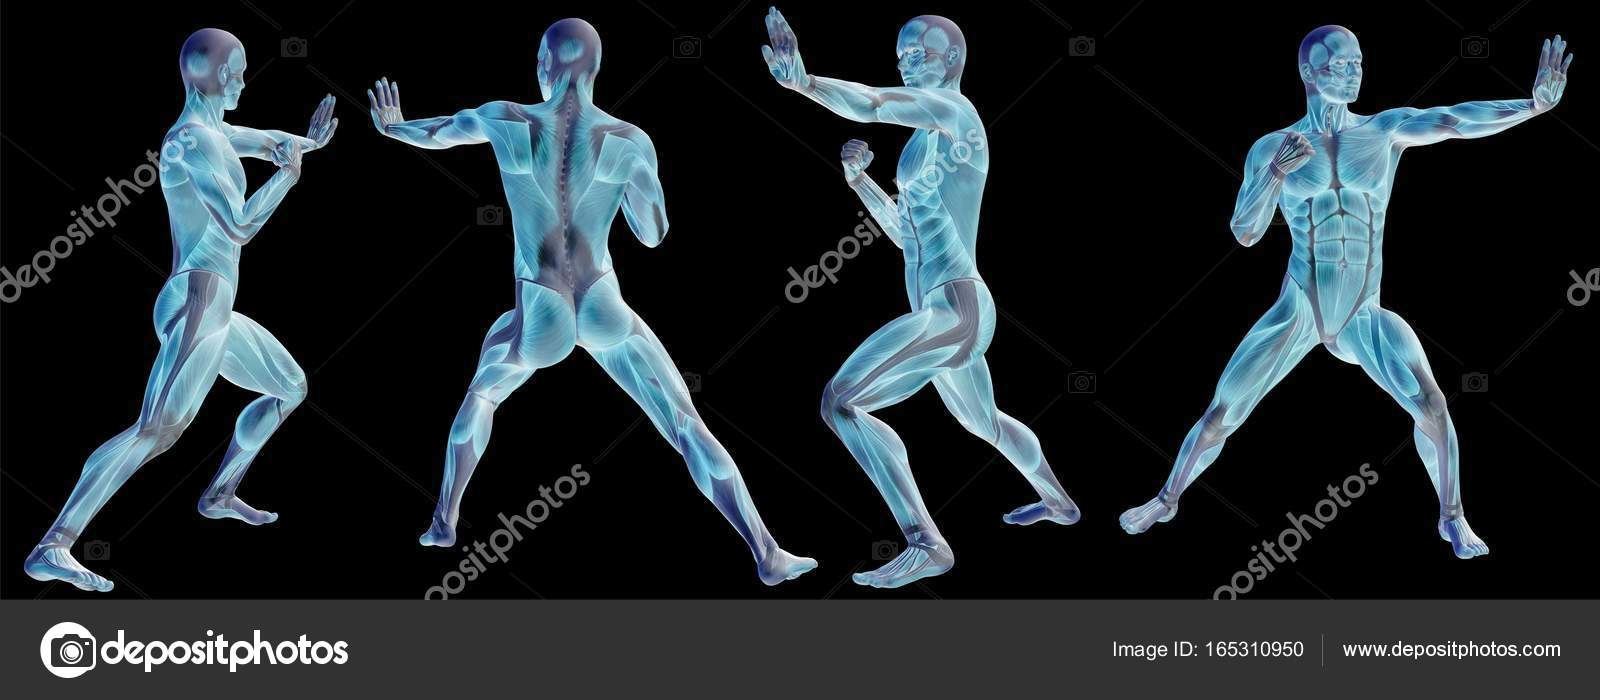 High Resolution Concept Conceptual Human Or Man 3d Anatomy Body With